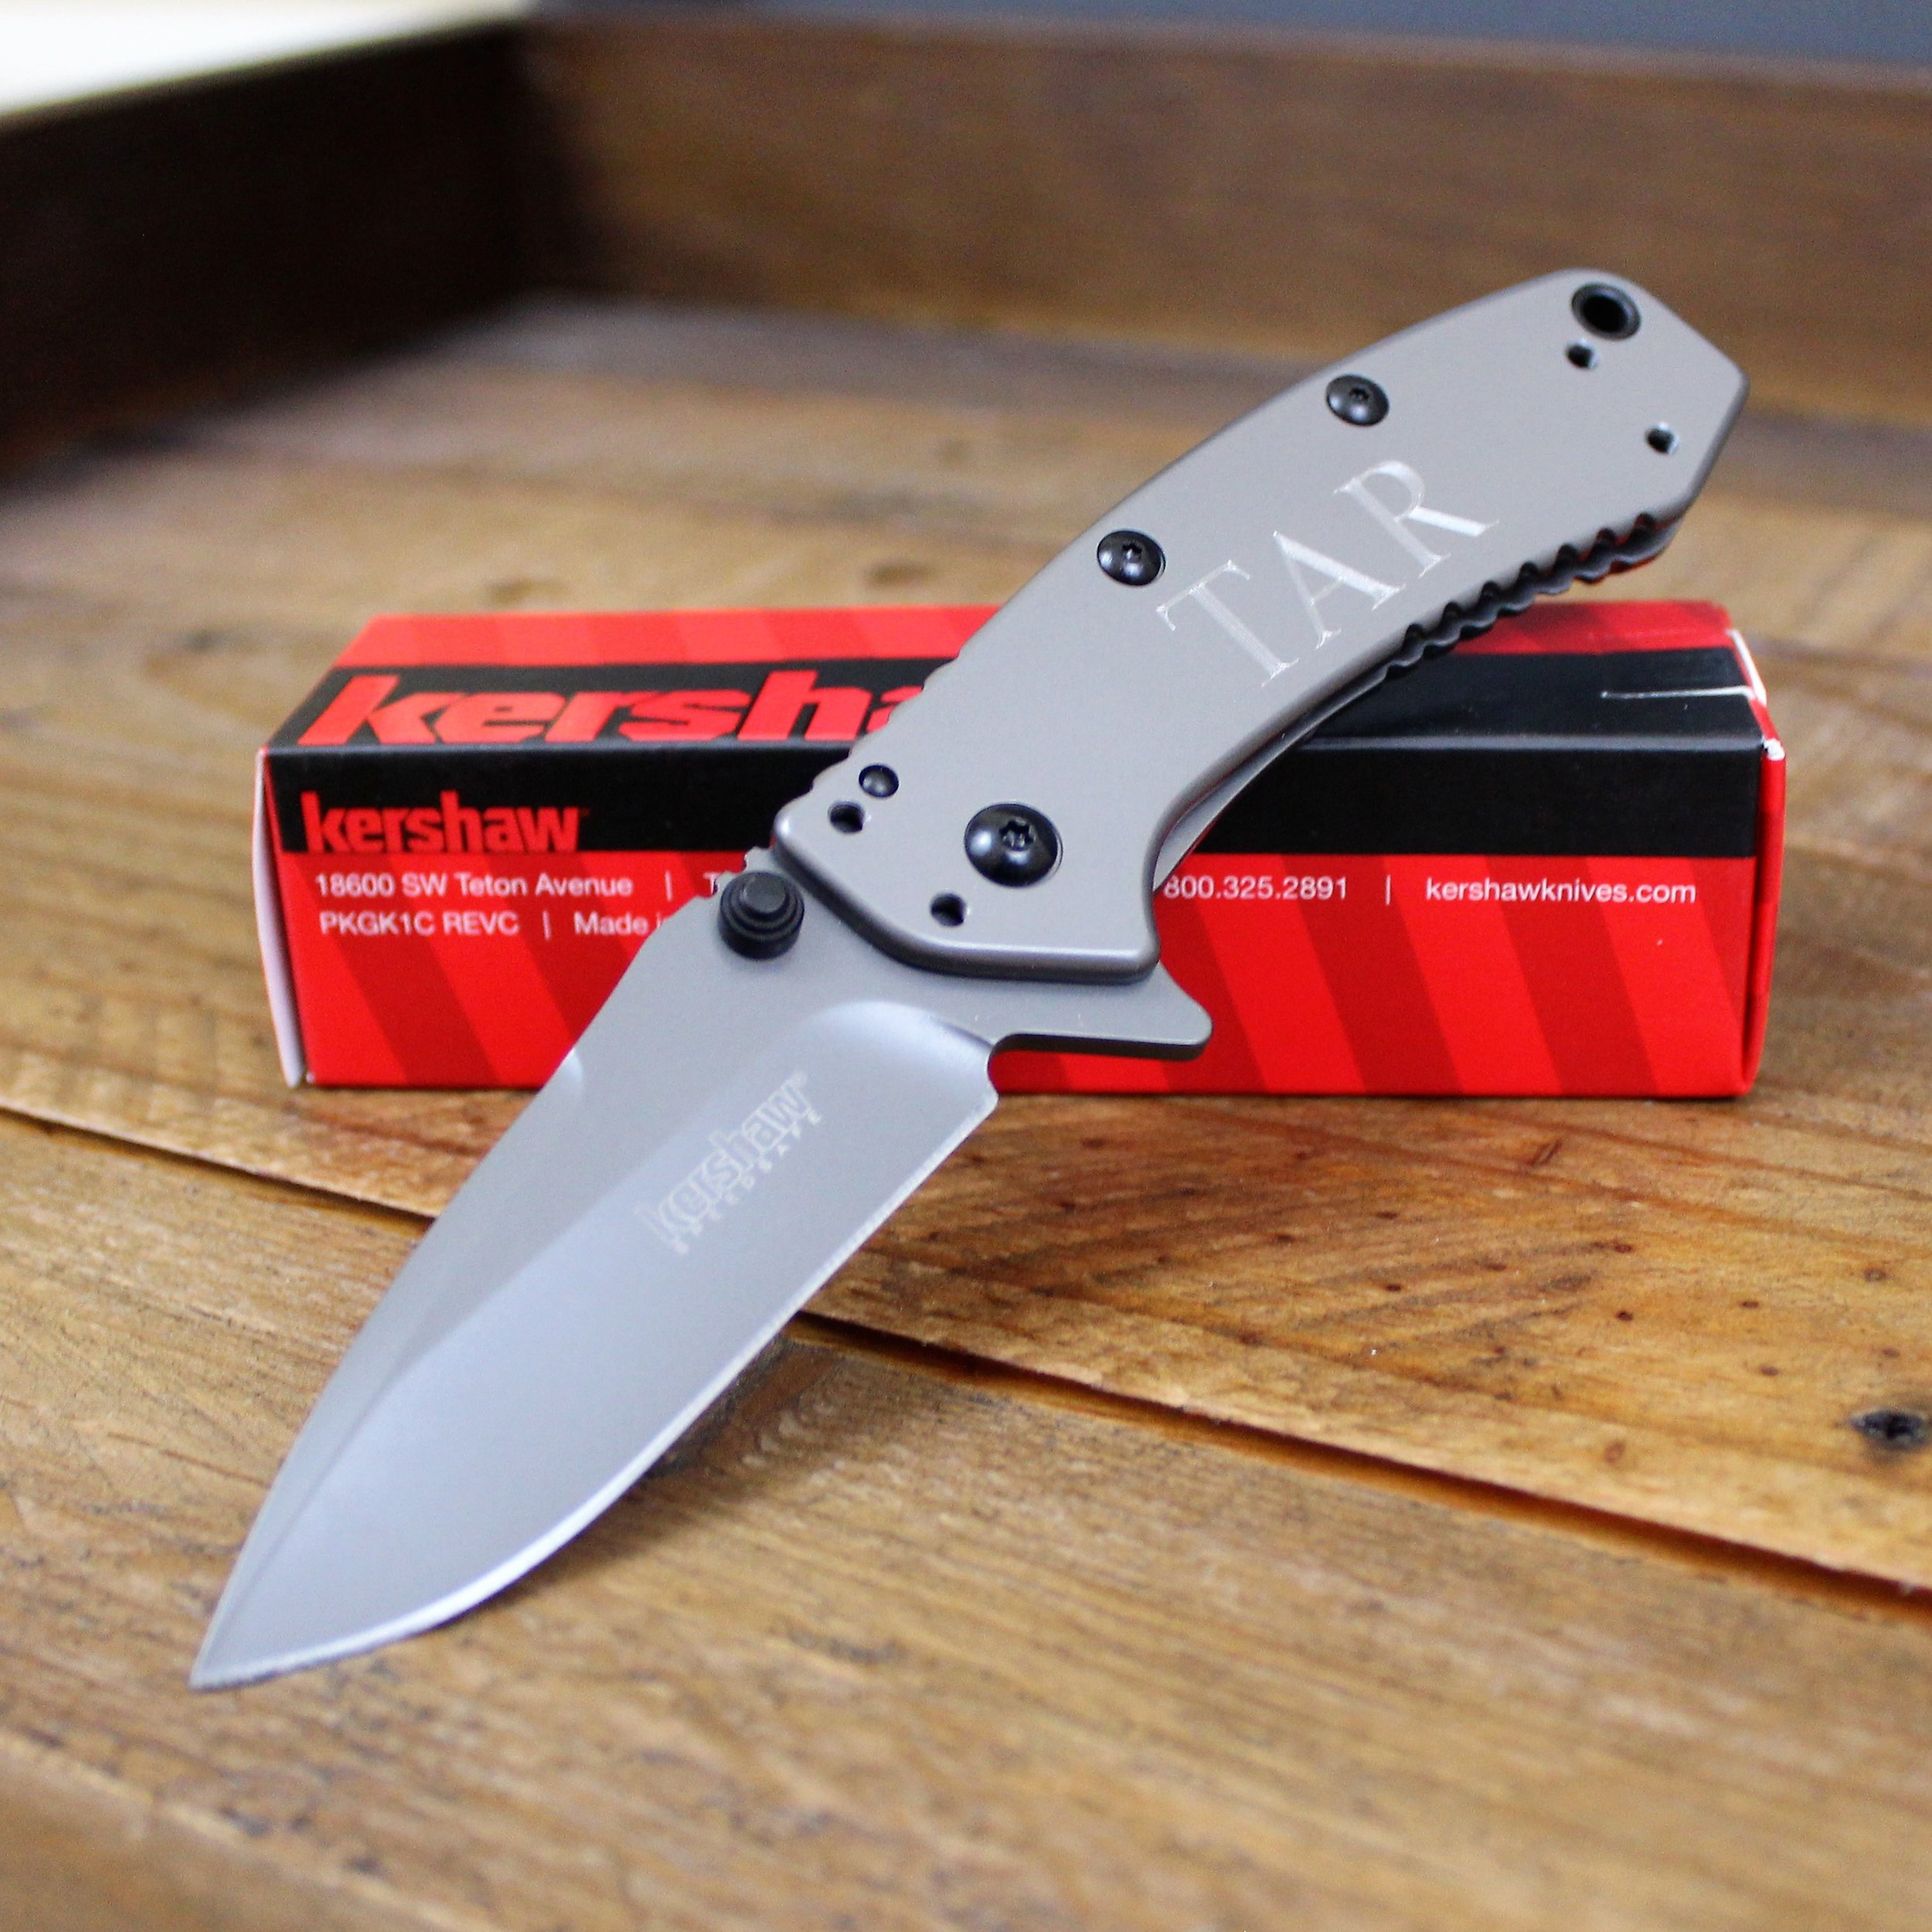 Kershaw Cryo Folding Knife — The Best Man Gifts